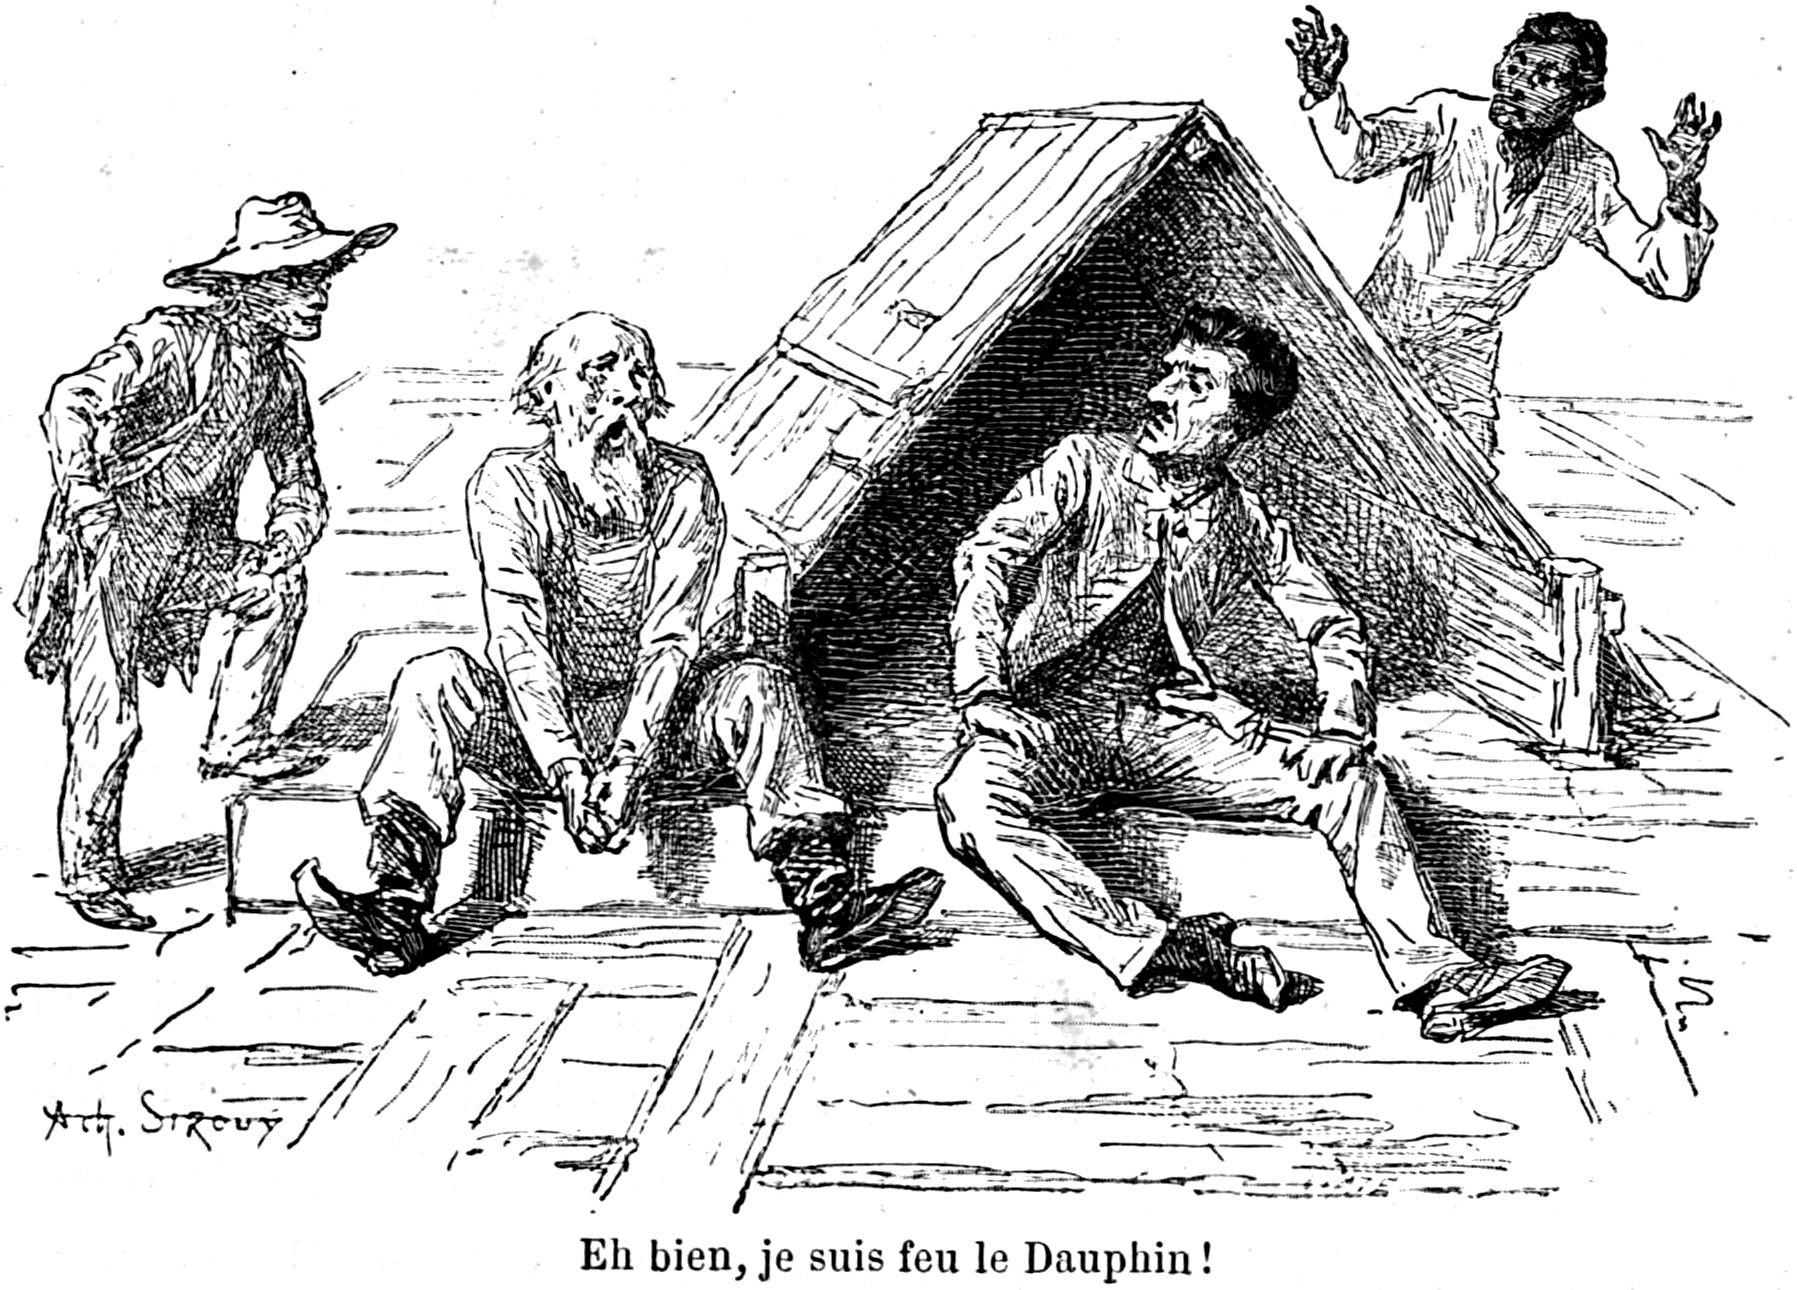 huckleberry finn original illustrations gutenberg google search hf huck dauphin duke jim